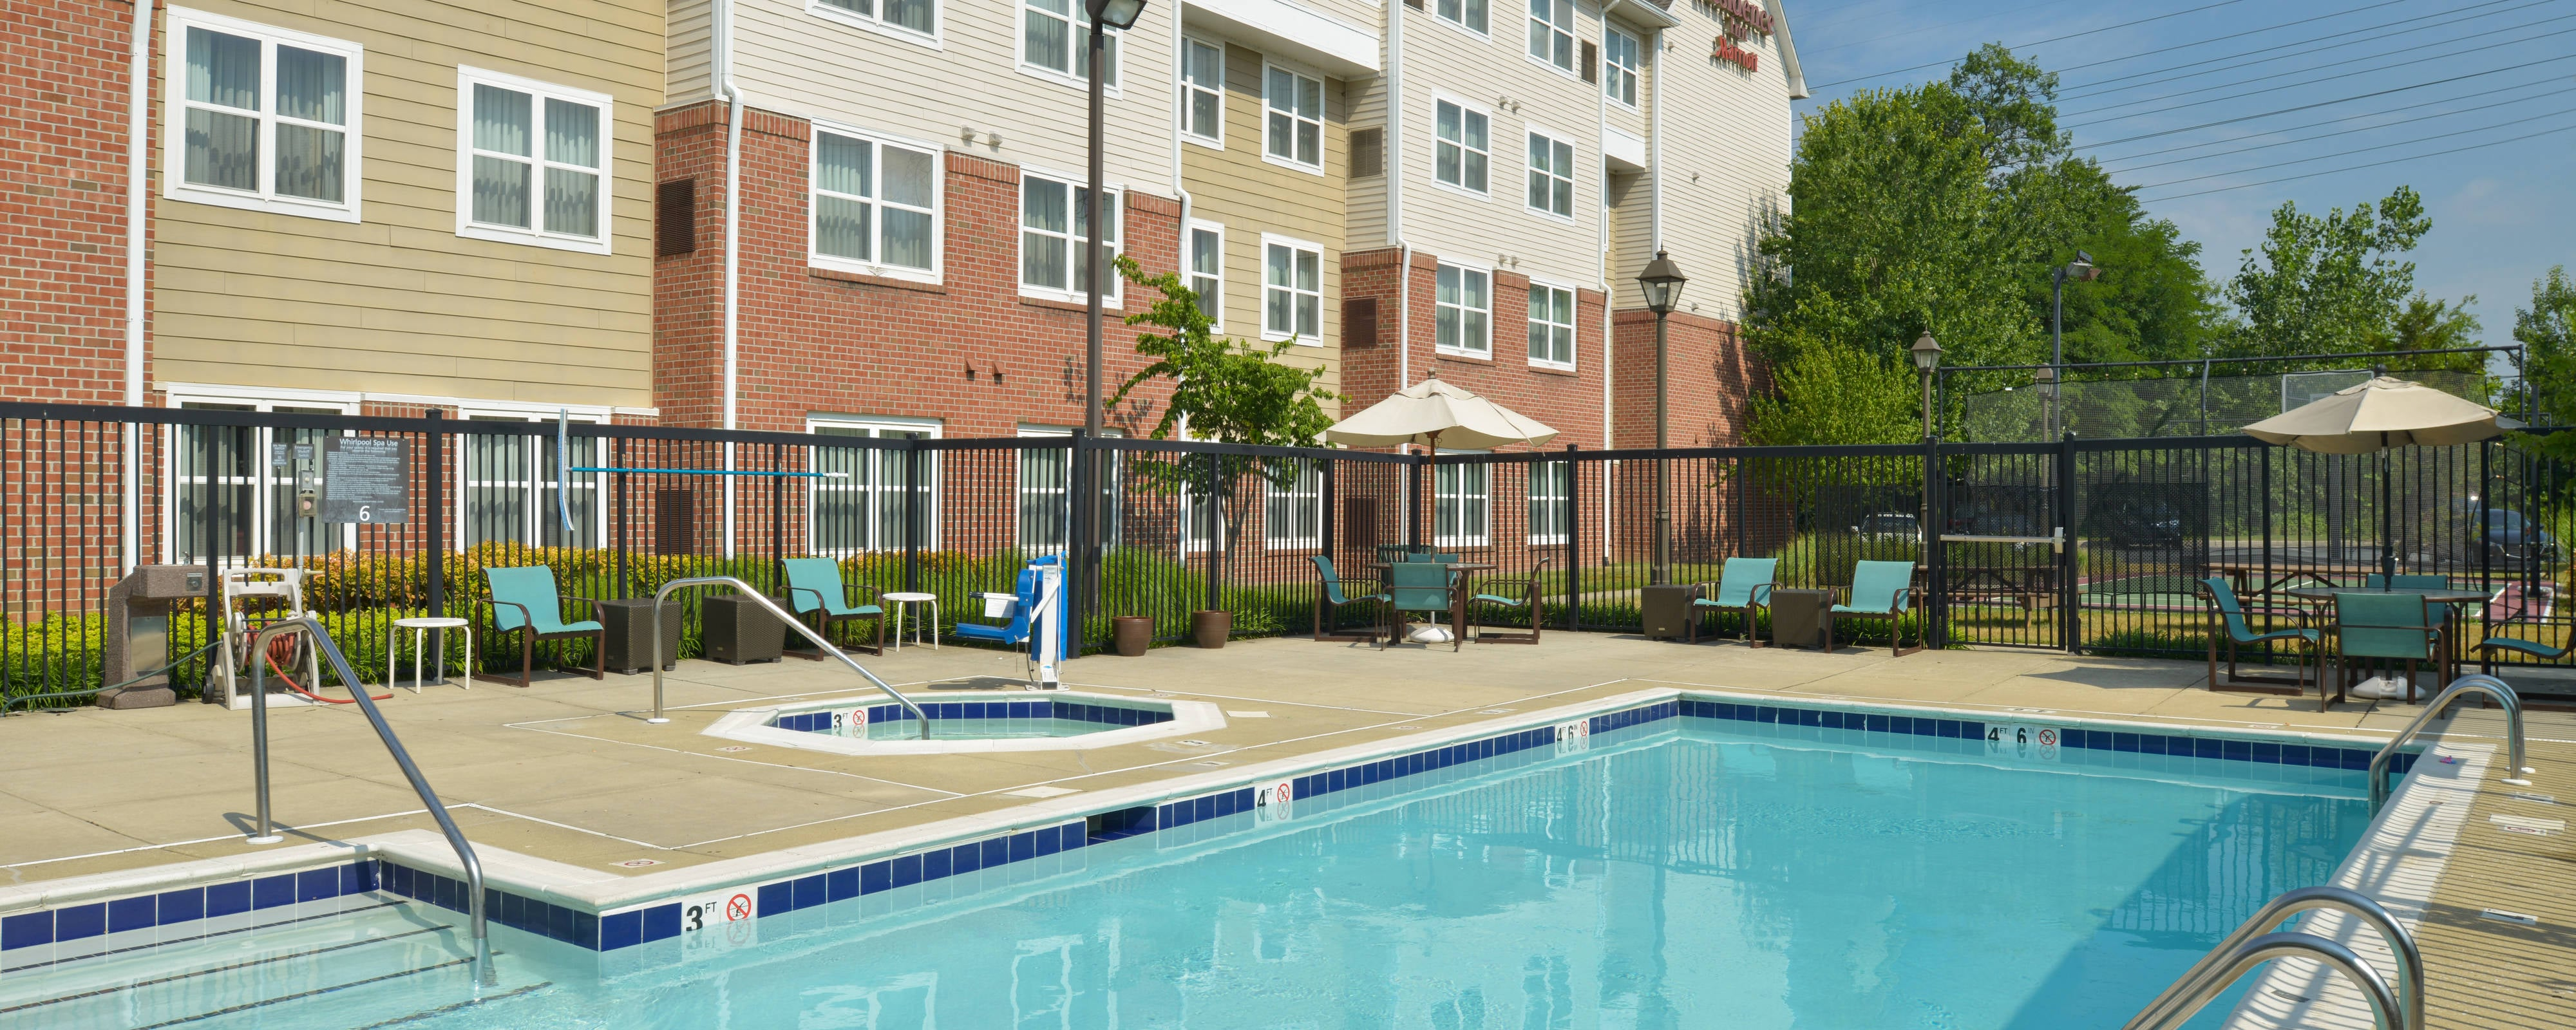 Residence Inn Baltimore White Marsh Pool